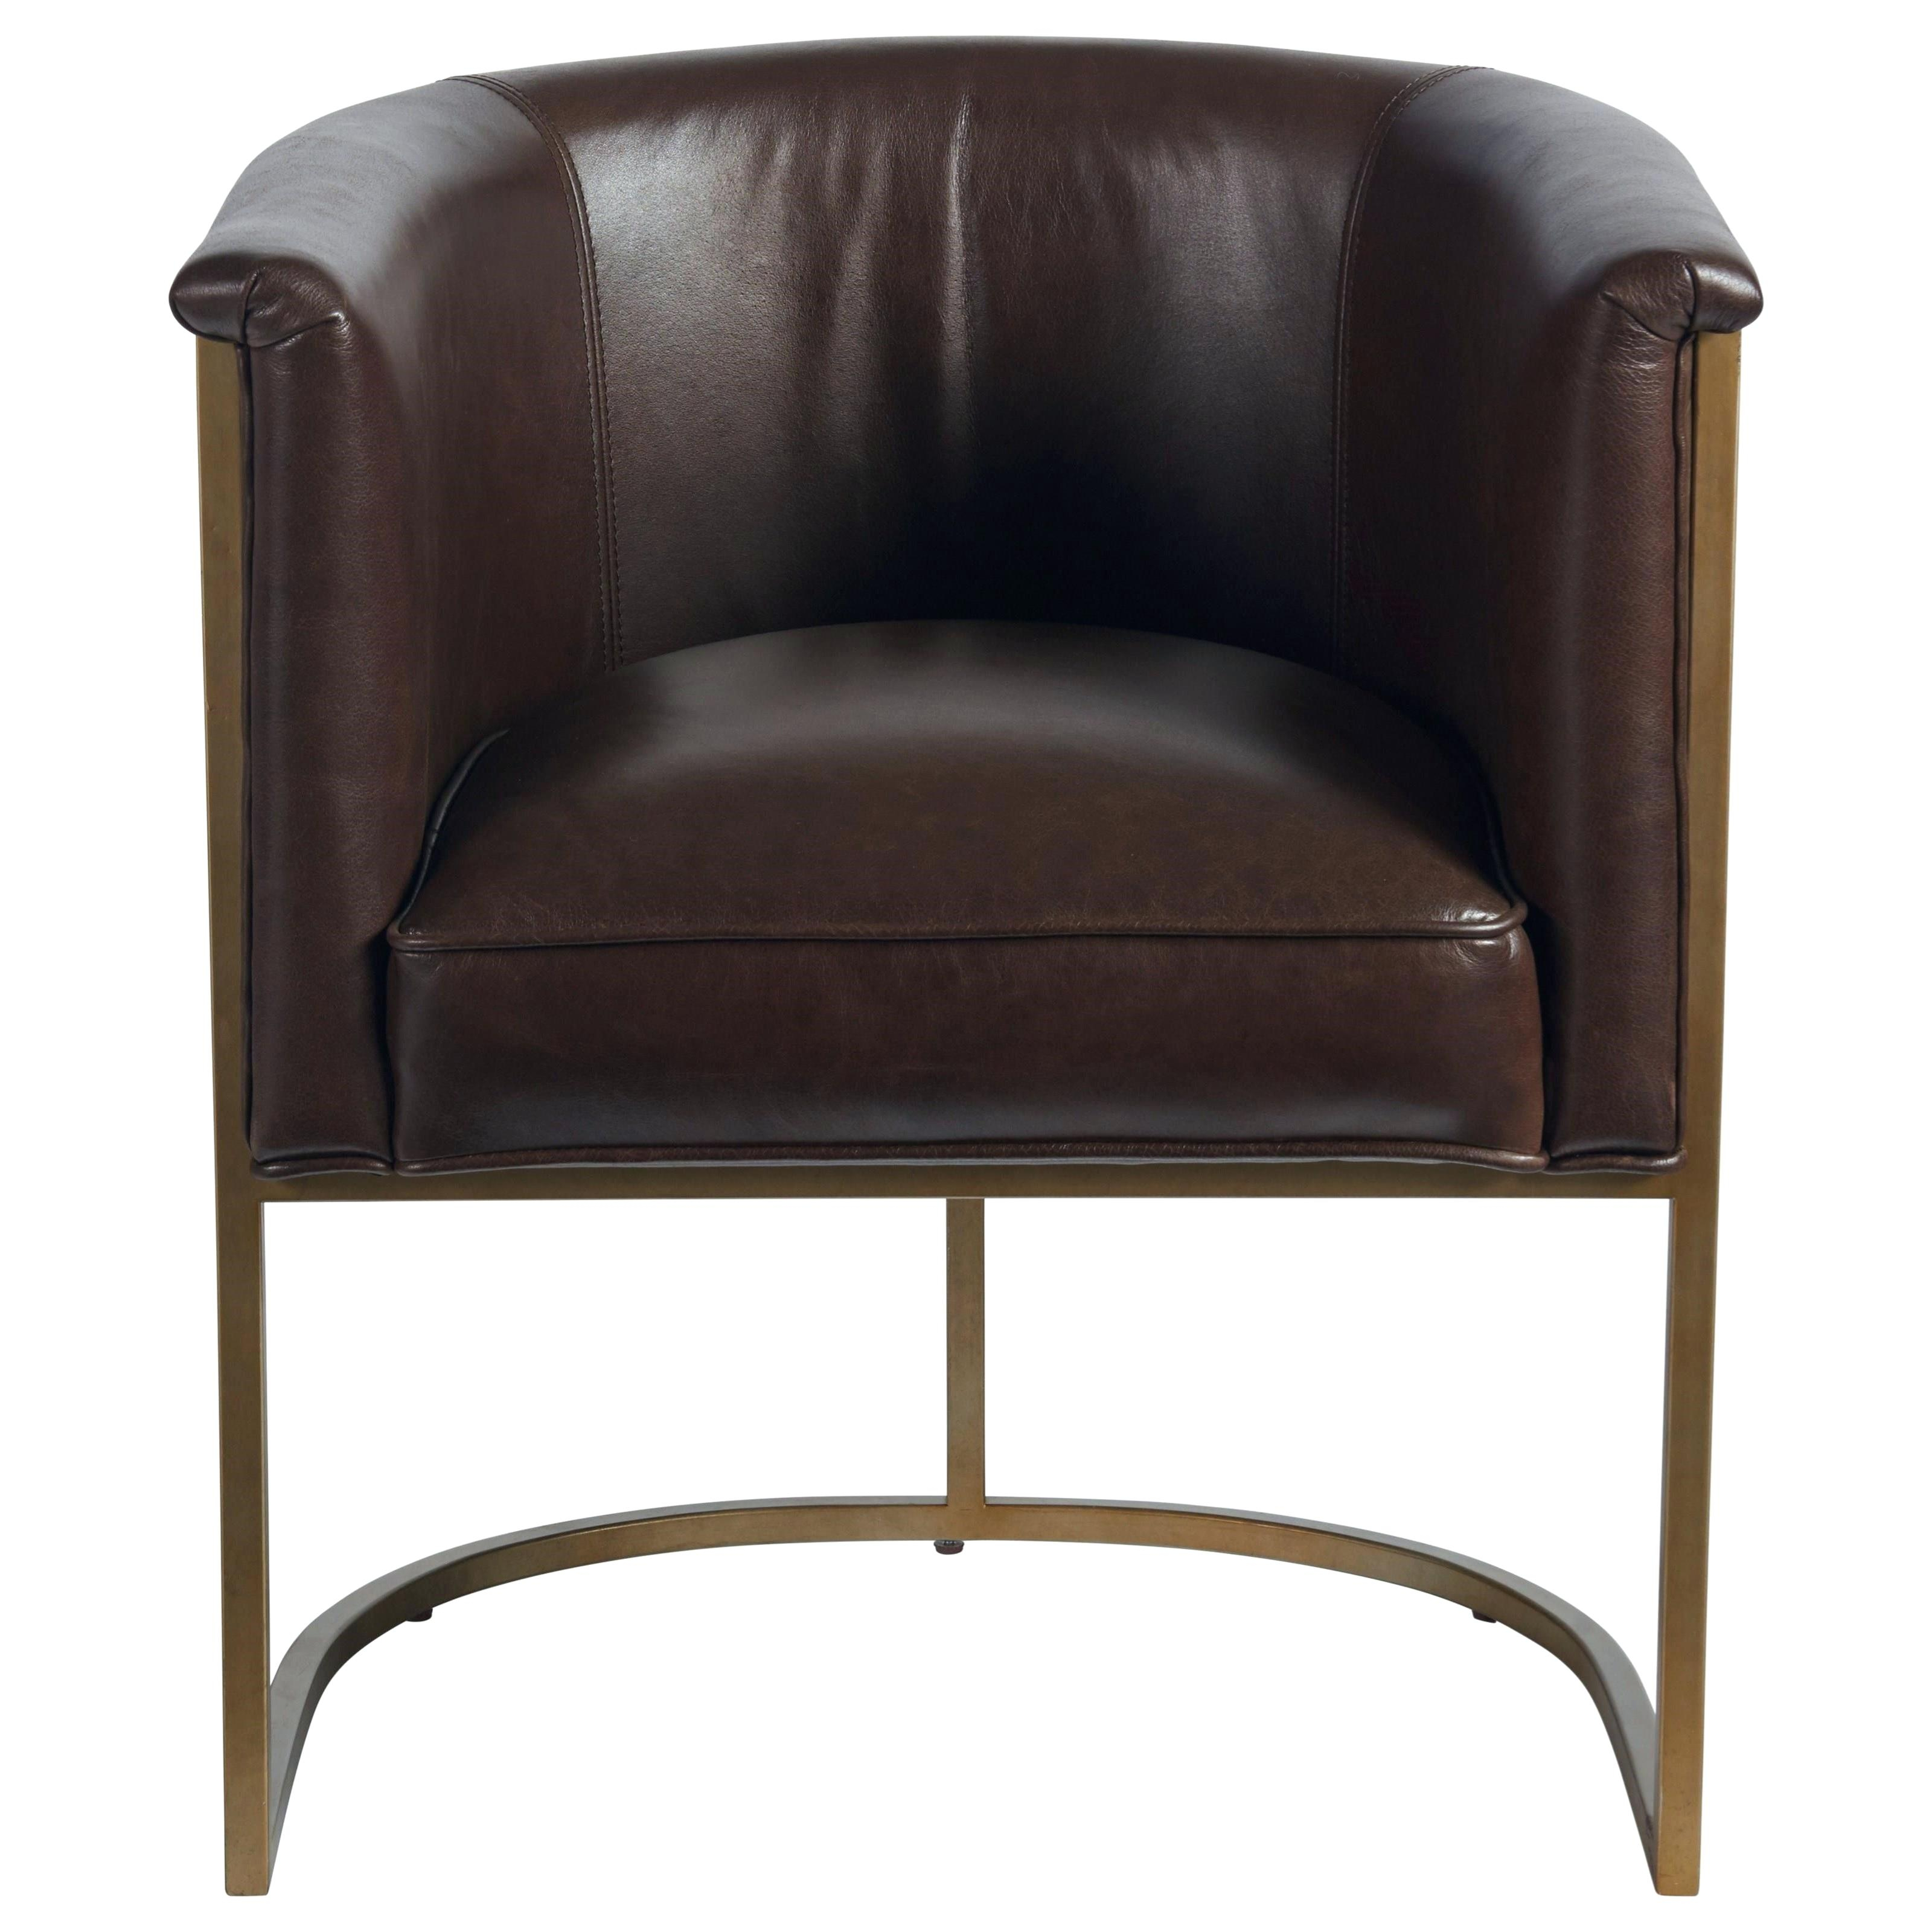 Purple Accent Chairs Chair Maroon Furniture Donation San Francisco In Harbor Grey Swivel Accent Chairs (Image 21 of 25)